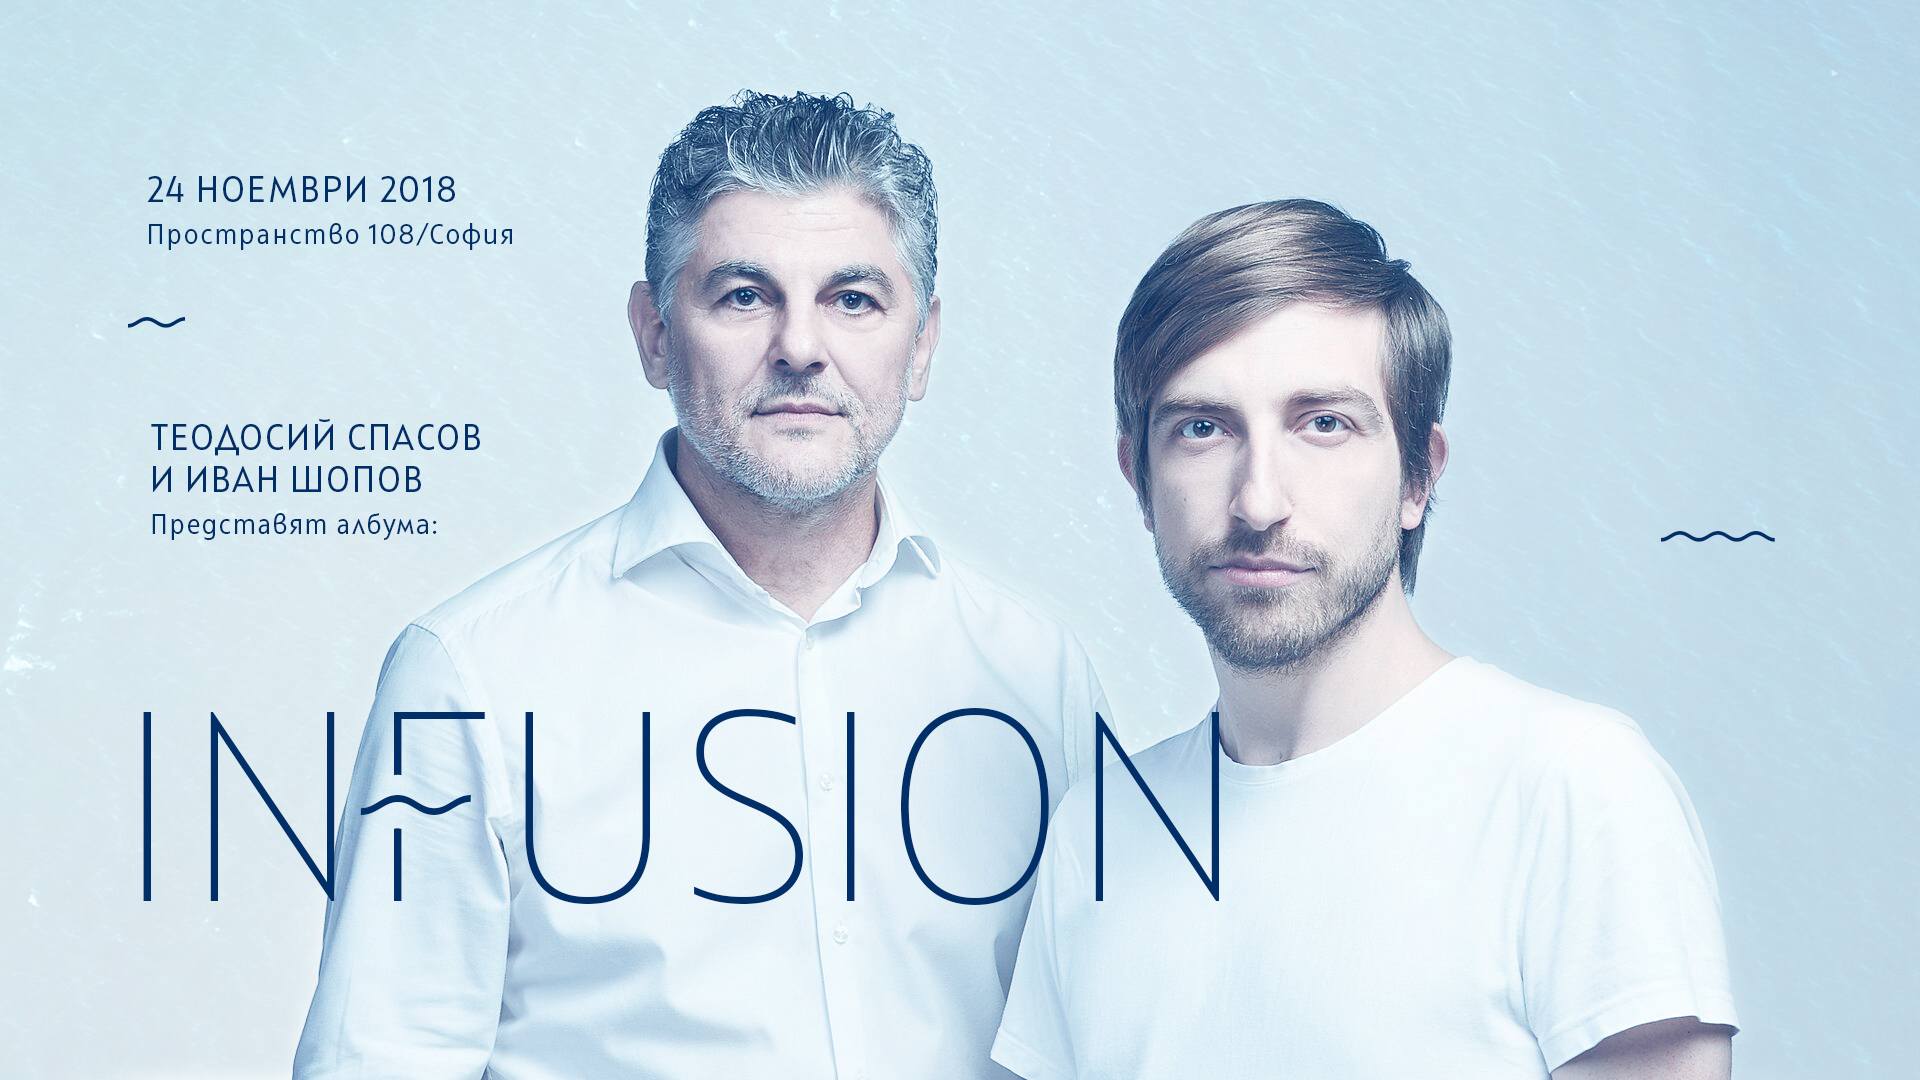 Ivan Shopov and Teodisii Spasov present InFusion